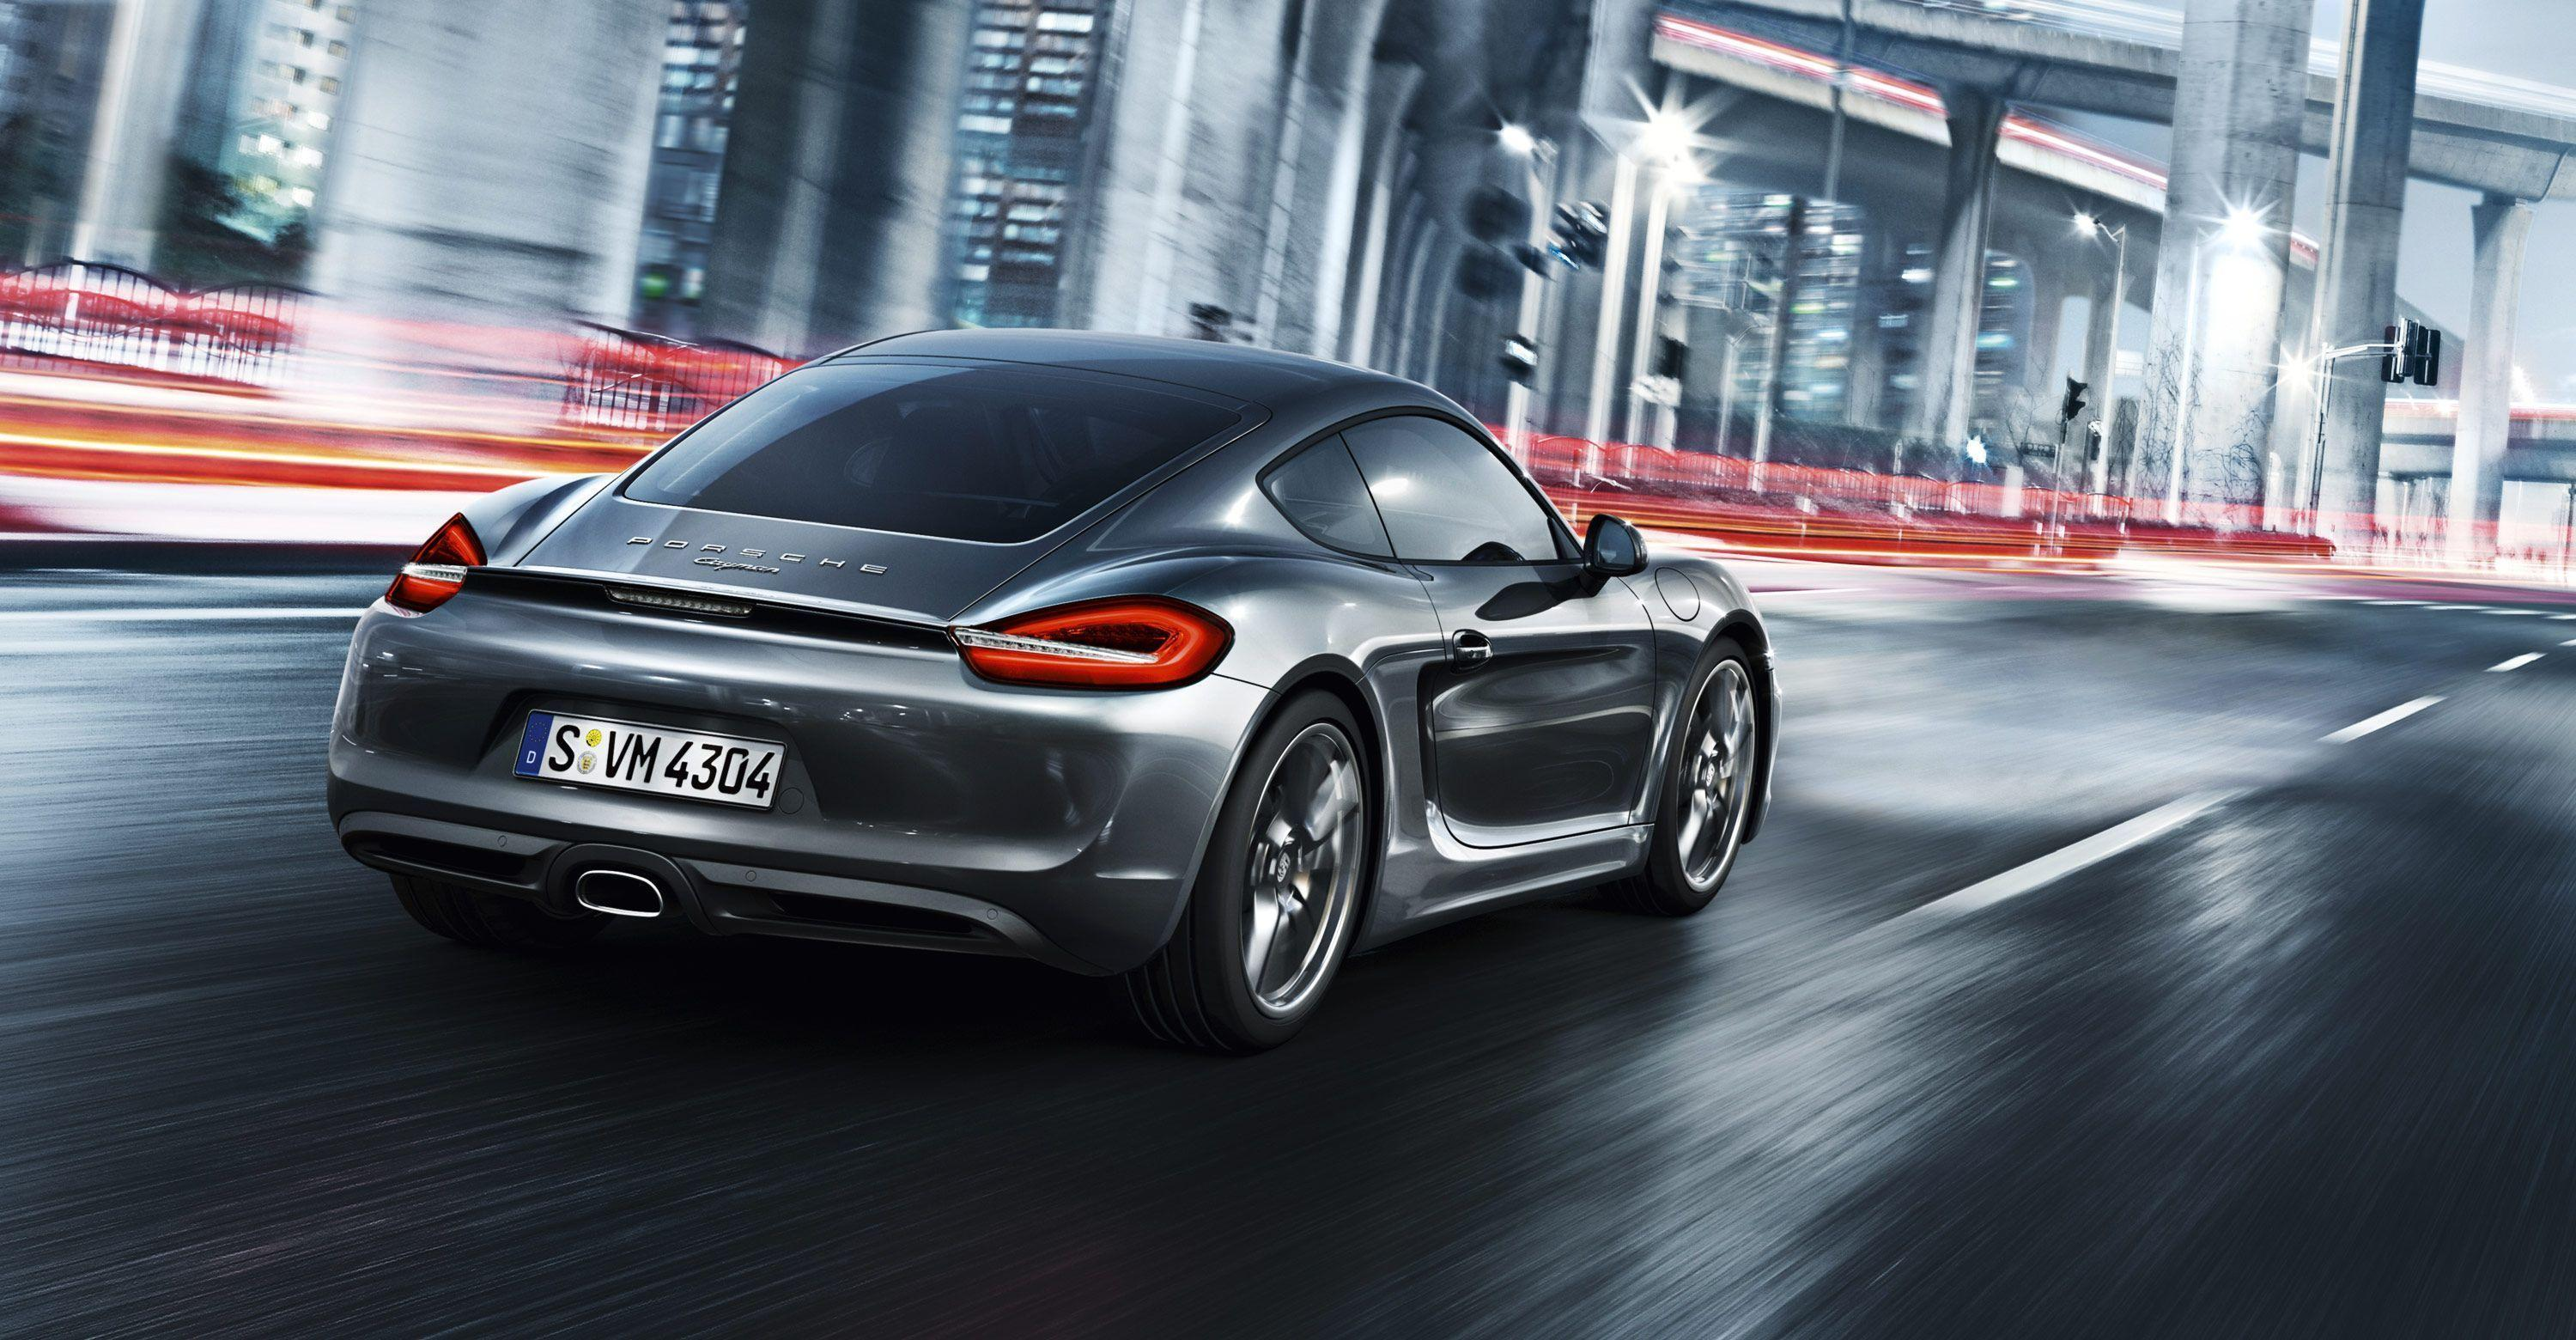 Porsche Cayman On The Road - Wallpapers AM